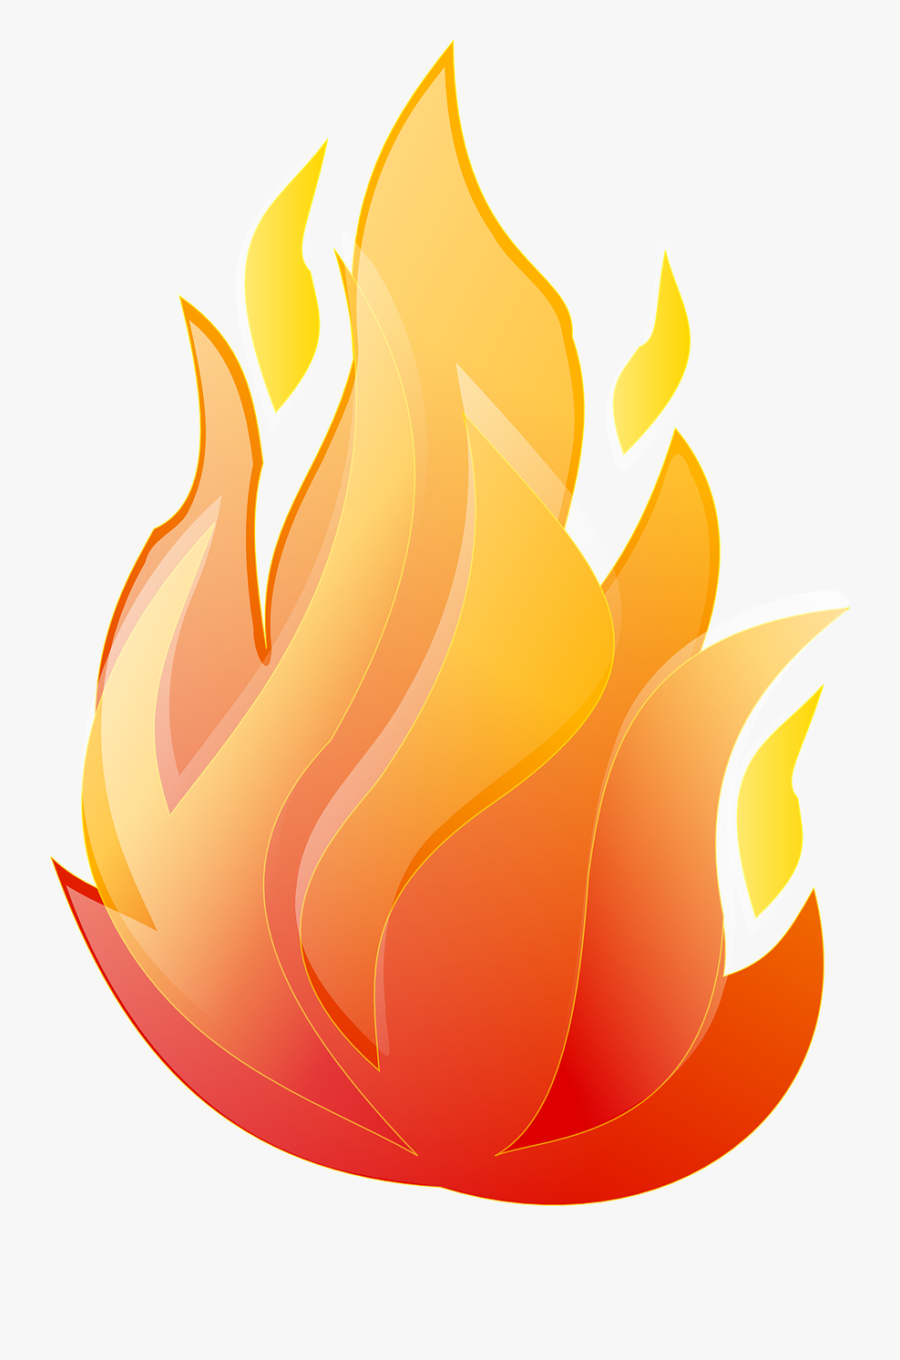 Free Vector Graphic Fire Flame Campfire Bonfire Image - Animated Transparent Background Fire Png, Transparent Clipart